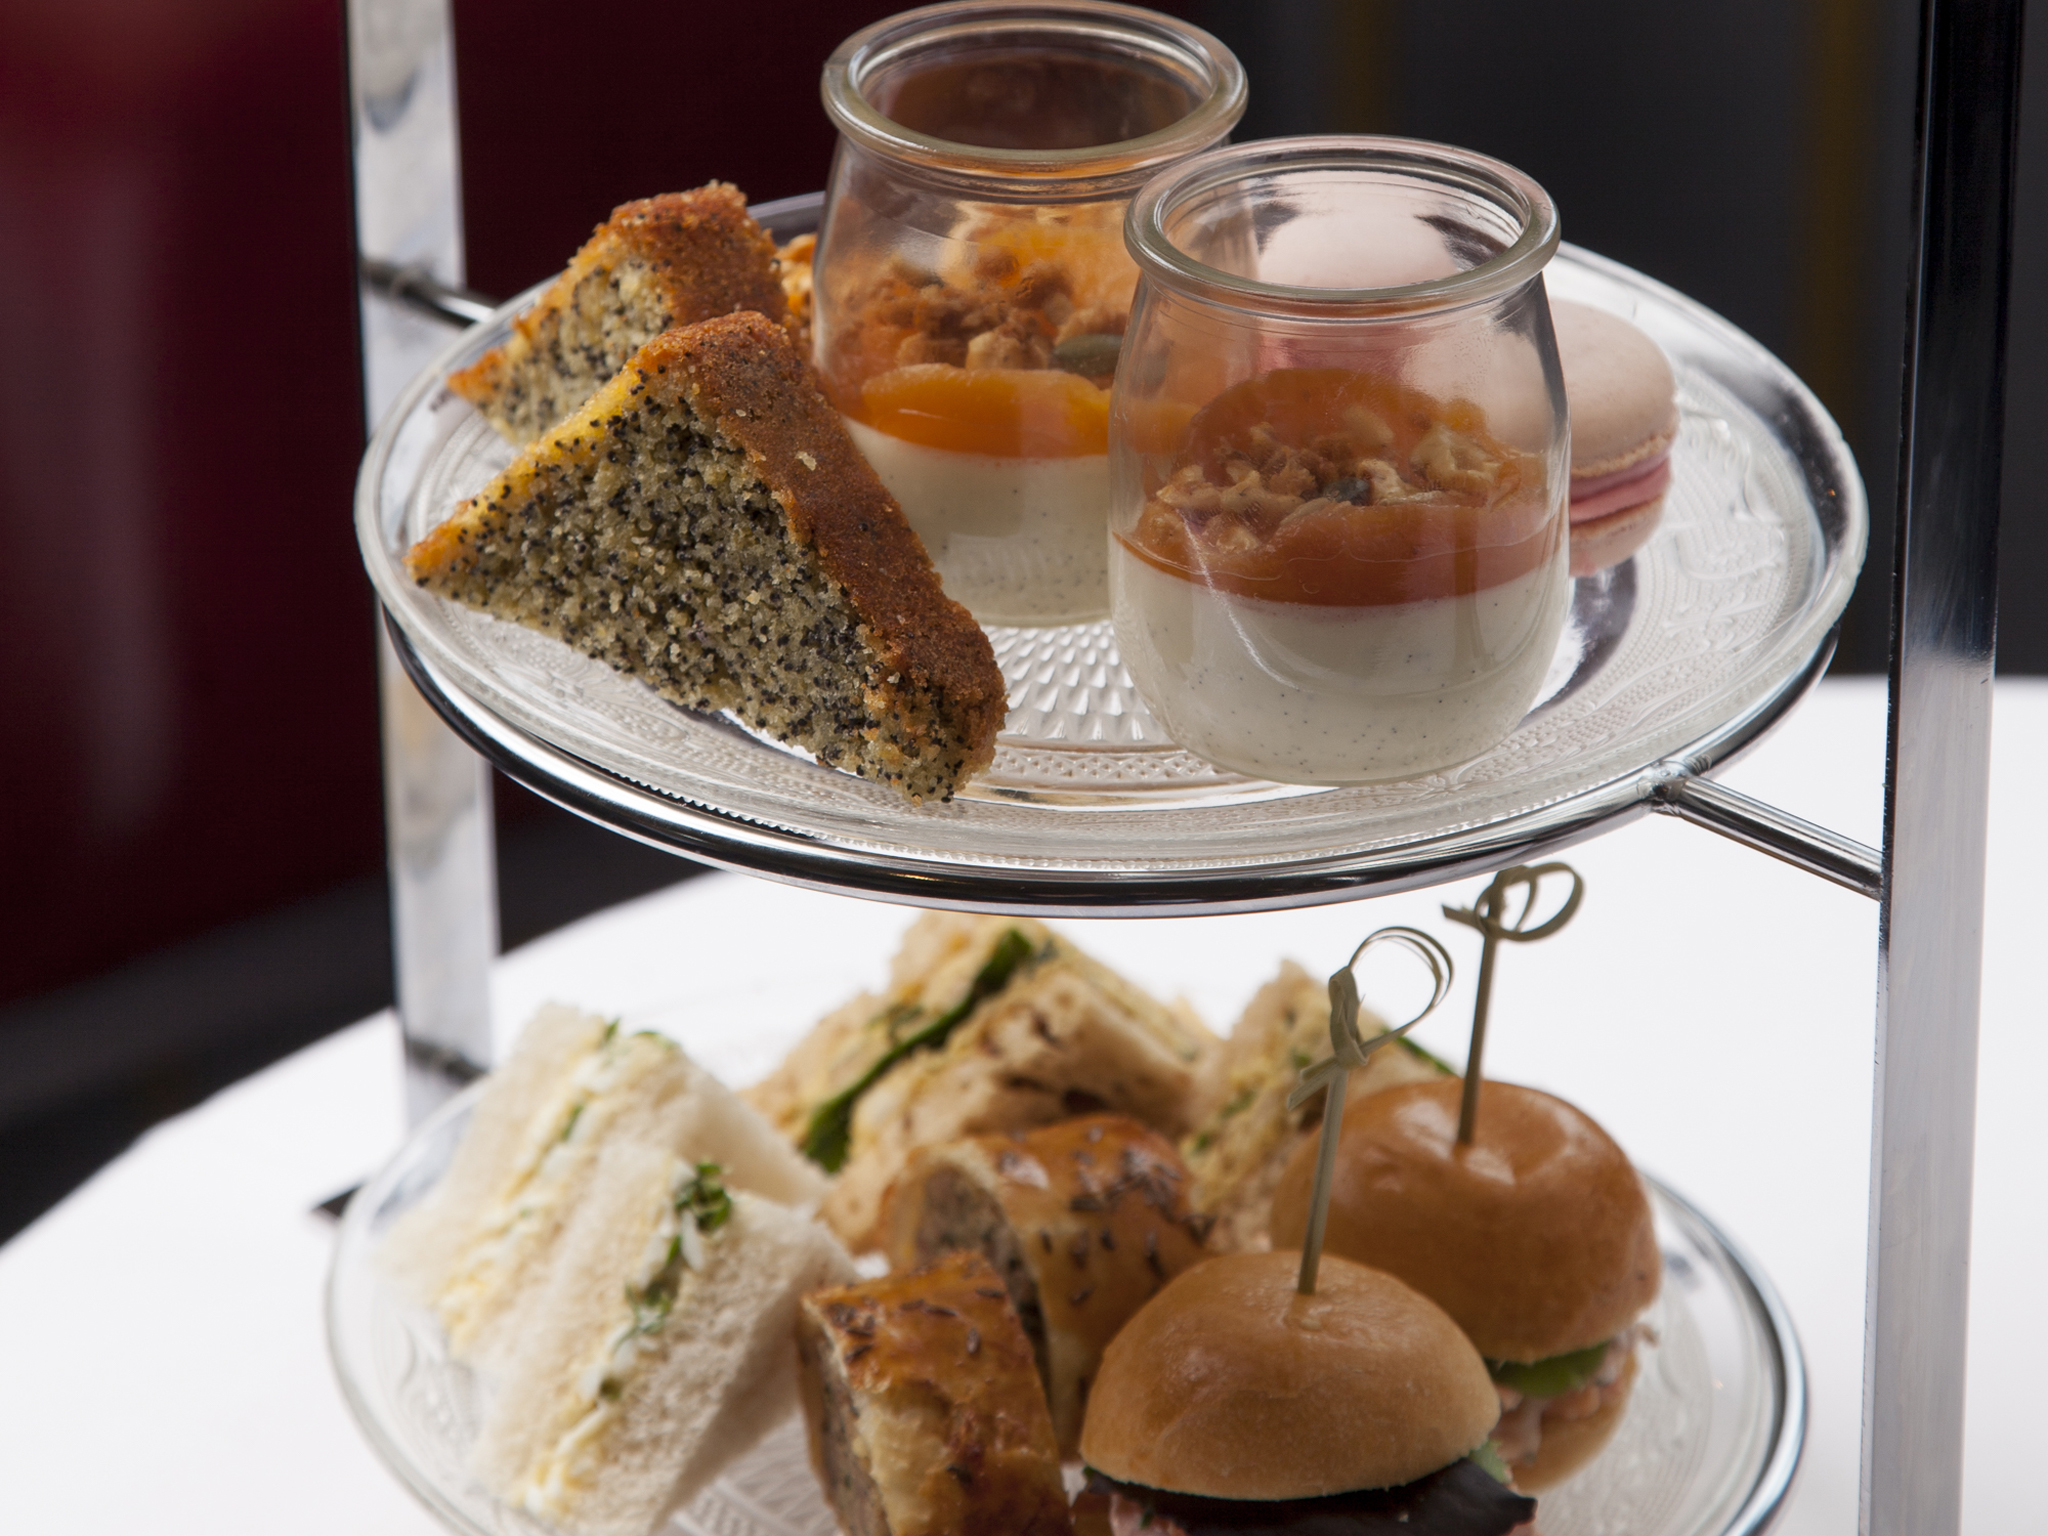 Classic afternoon tea at The Bar at The Gilbert Scott, St Pancras Renaissance Hotel